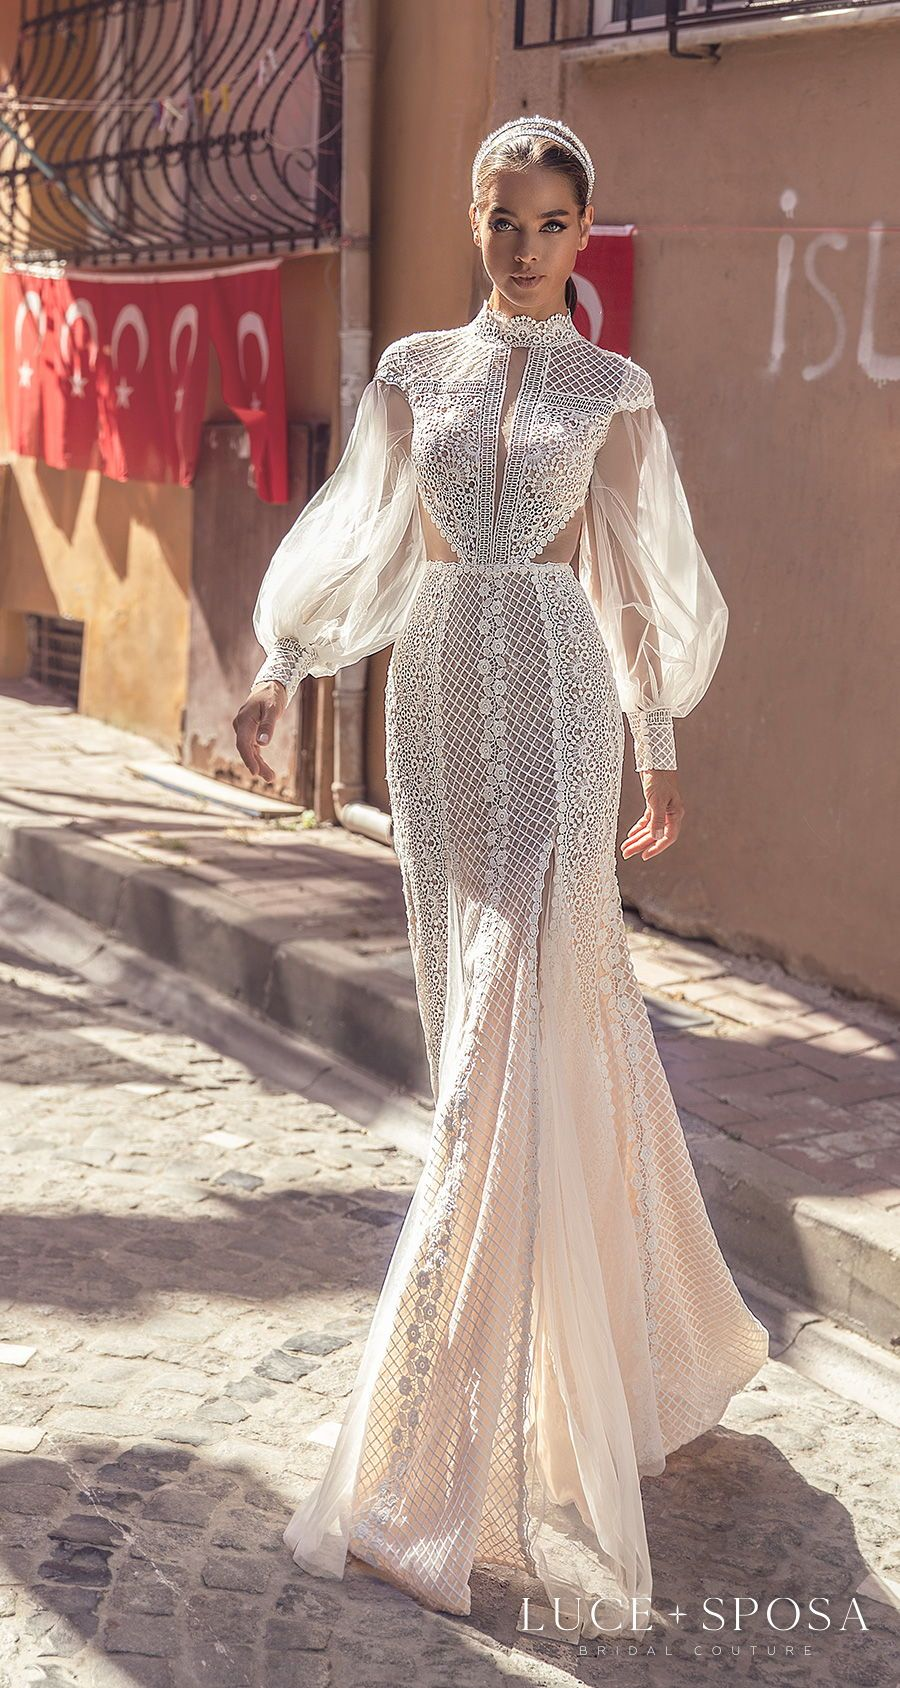 Luce Sposa Spring/Summer 2021 Wedding Dresses — 'Istanbul' & 'Paris' Bridal Collections | Wedding Inspirasi